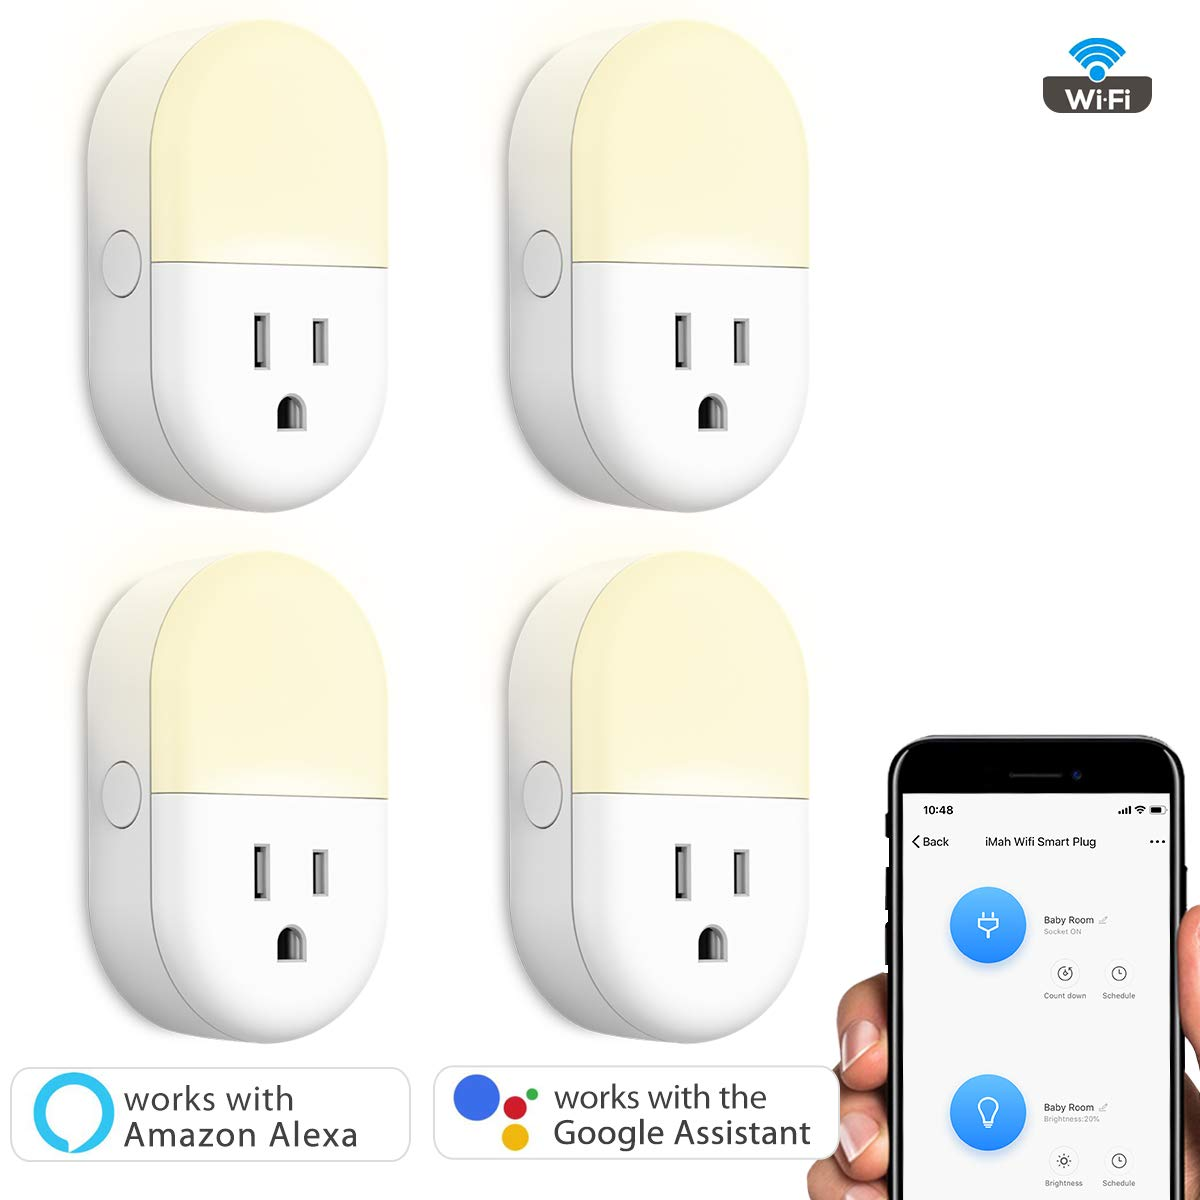 iMah Night Light Plug-in, Smart Plug works with Alexa Google Assistant IFTTT, WiFi Smart Plug Mini Outlet Socket control your Devices from Anywhere (4-Pack) by iMah (Image #2)